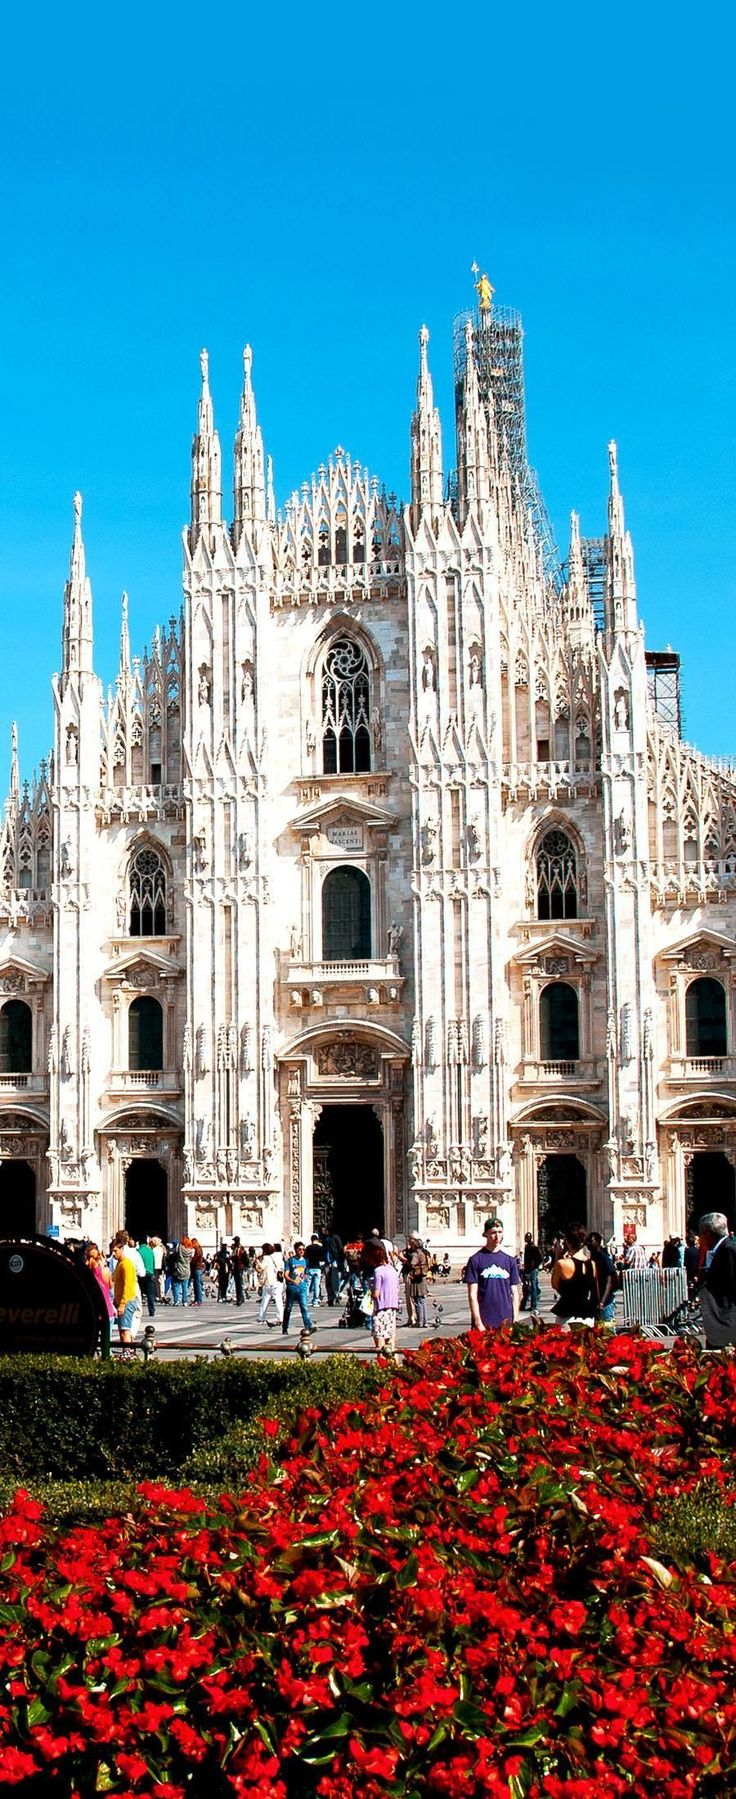 16 best Churches & Medieval Gothic Cathedrals images on ...